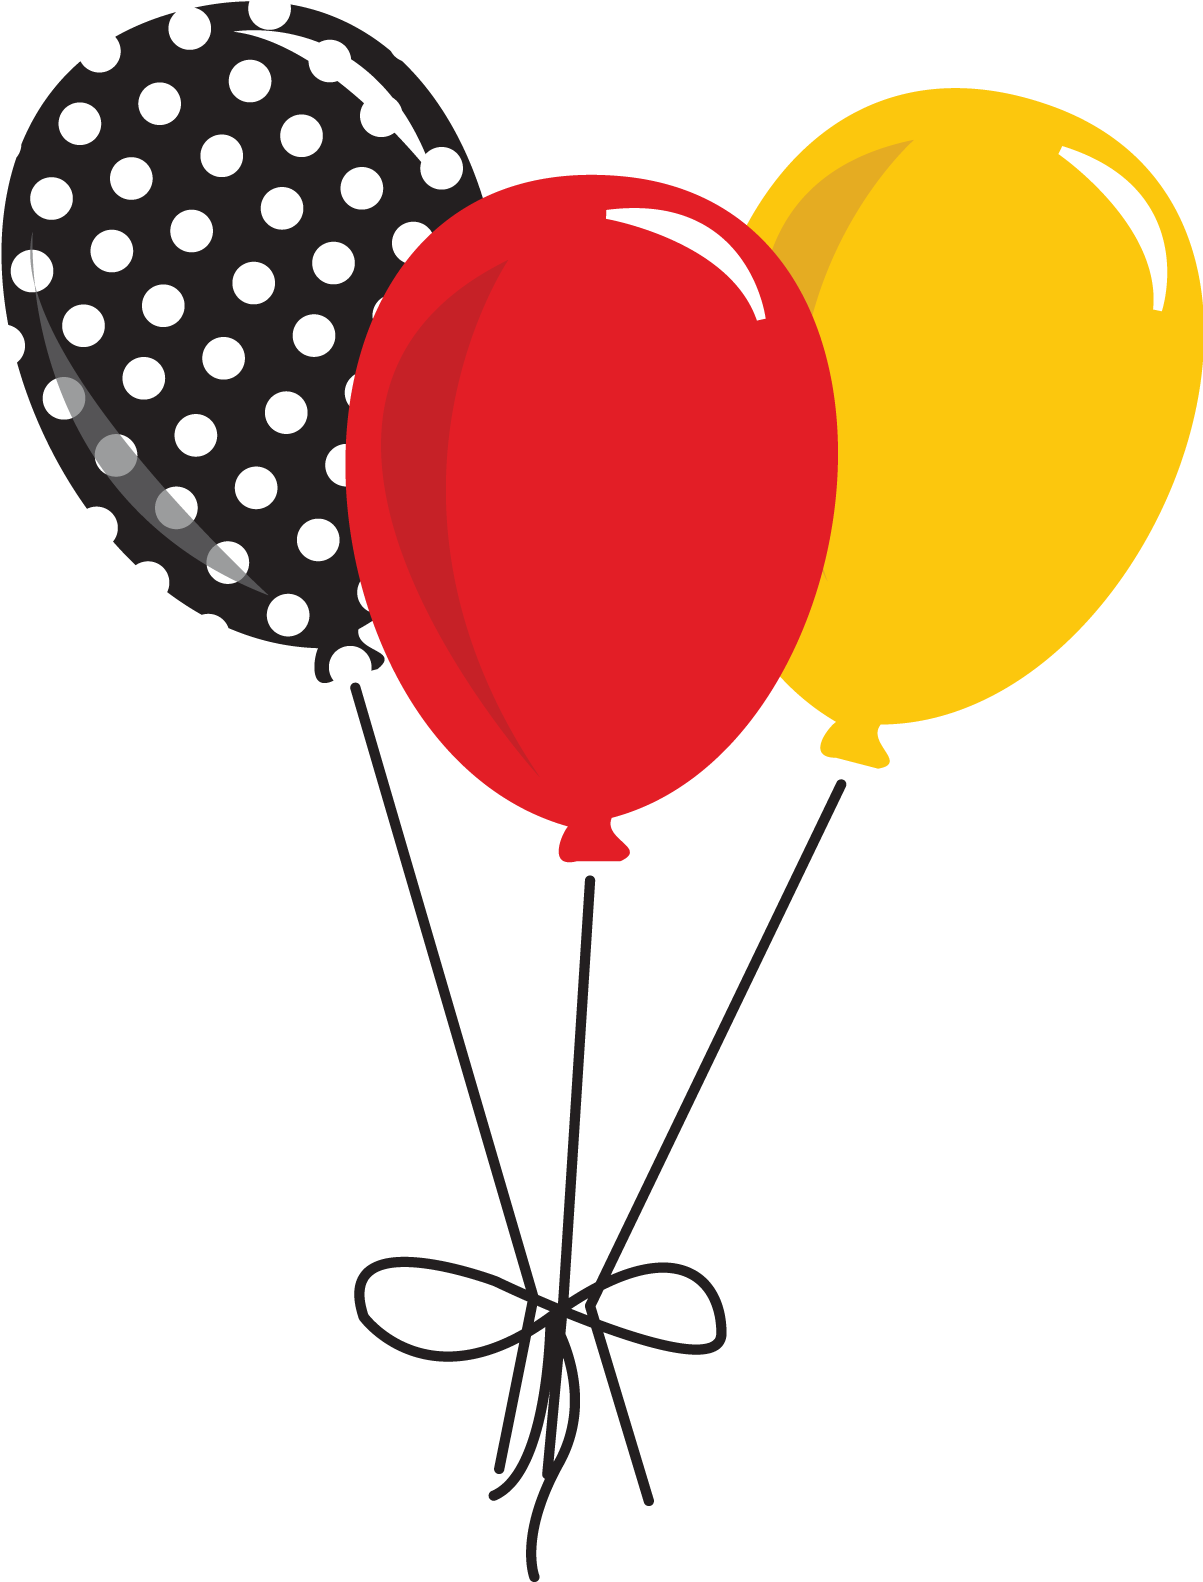 Mickey mouse balloons png. Download hd banner graphic